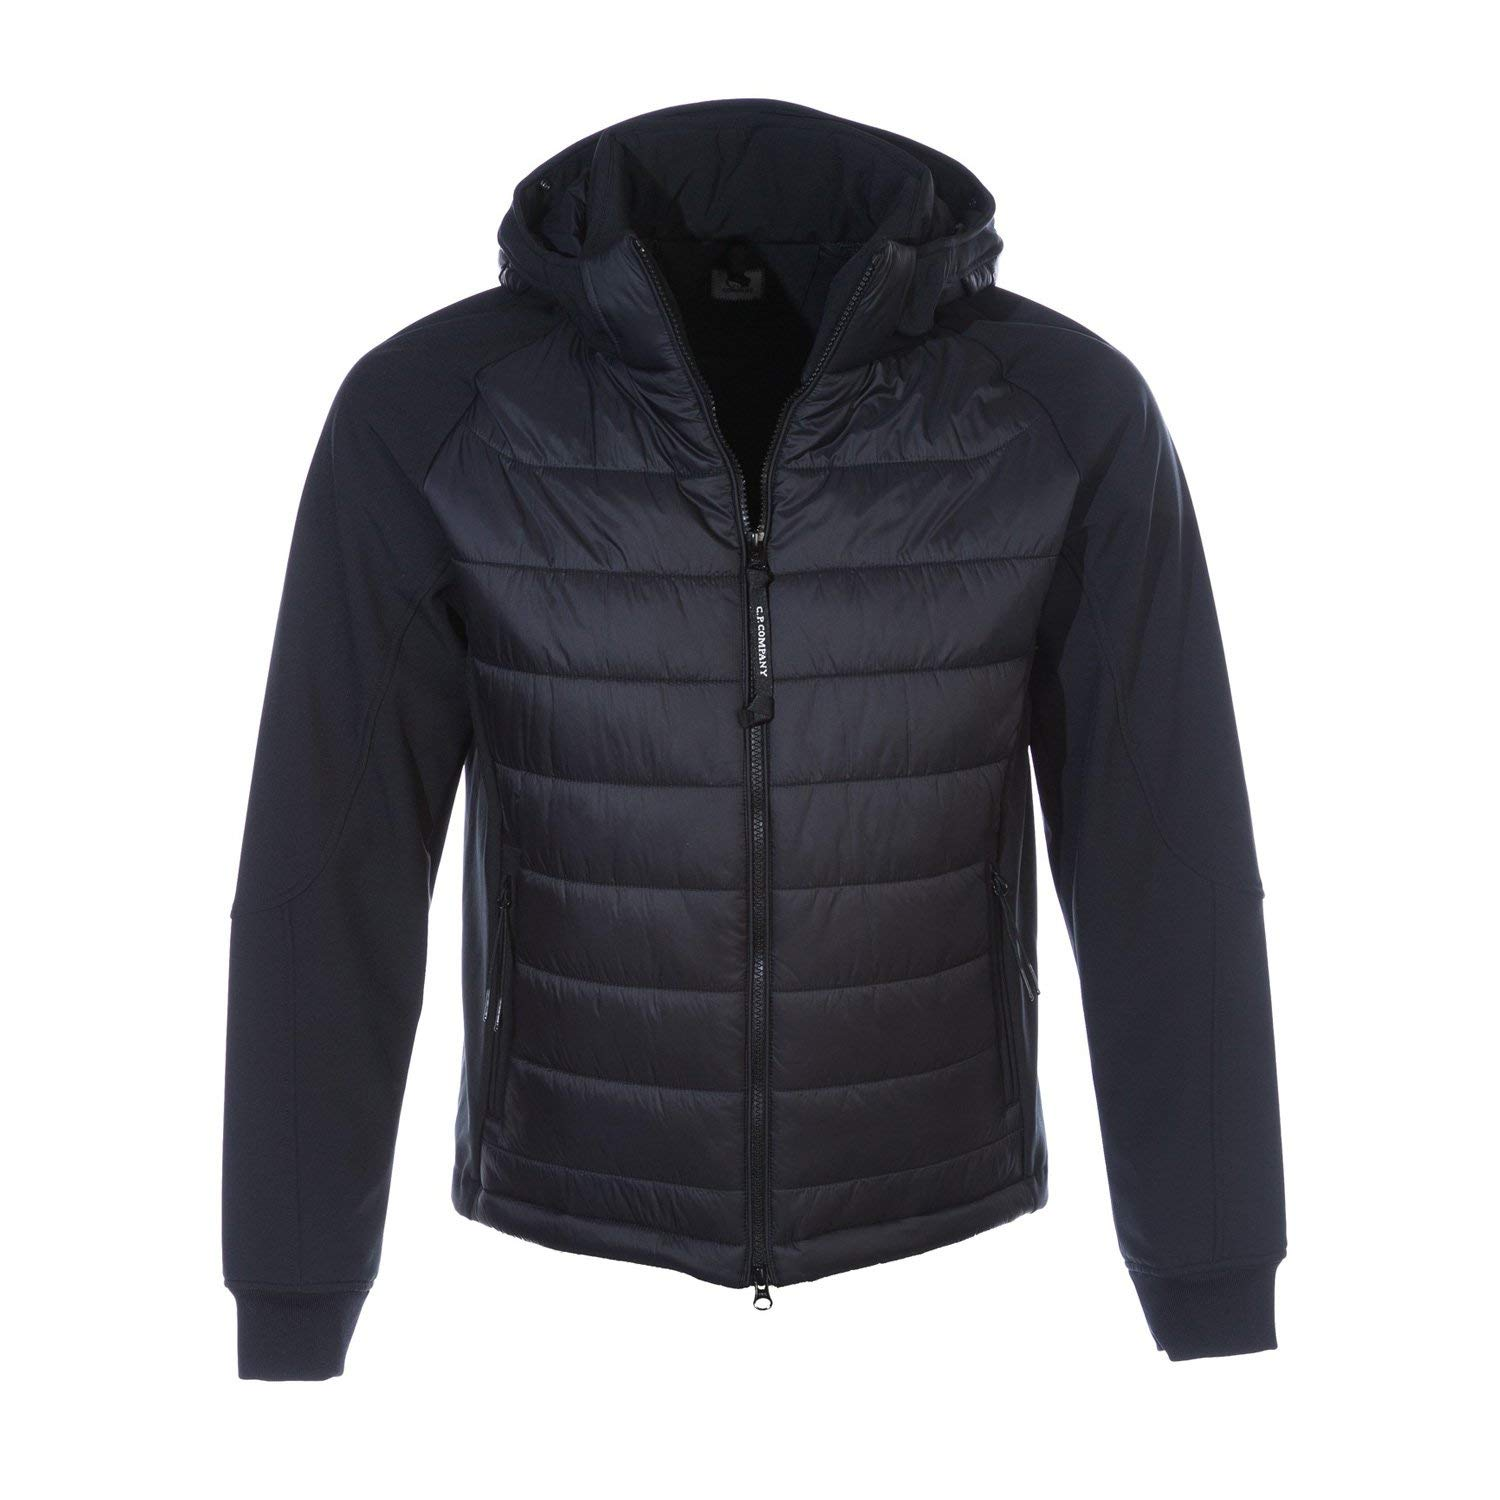 CP Company Quilted Soft Shell Jacket in Black